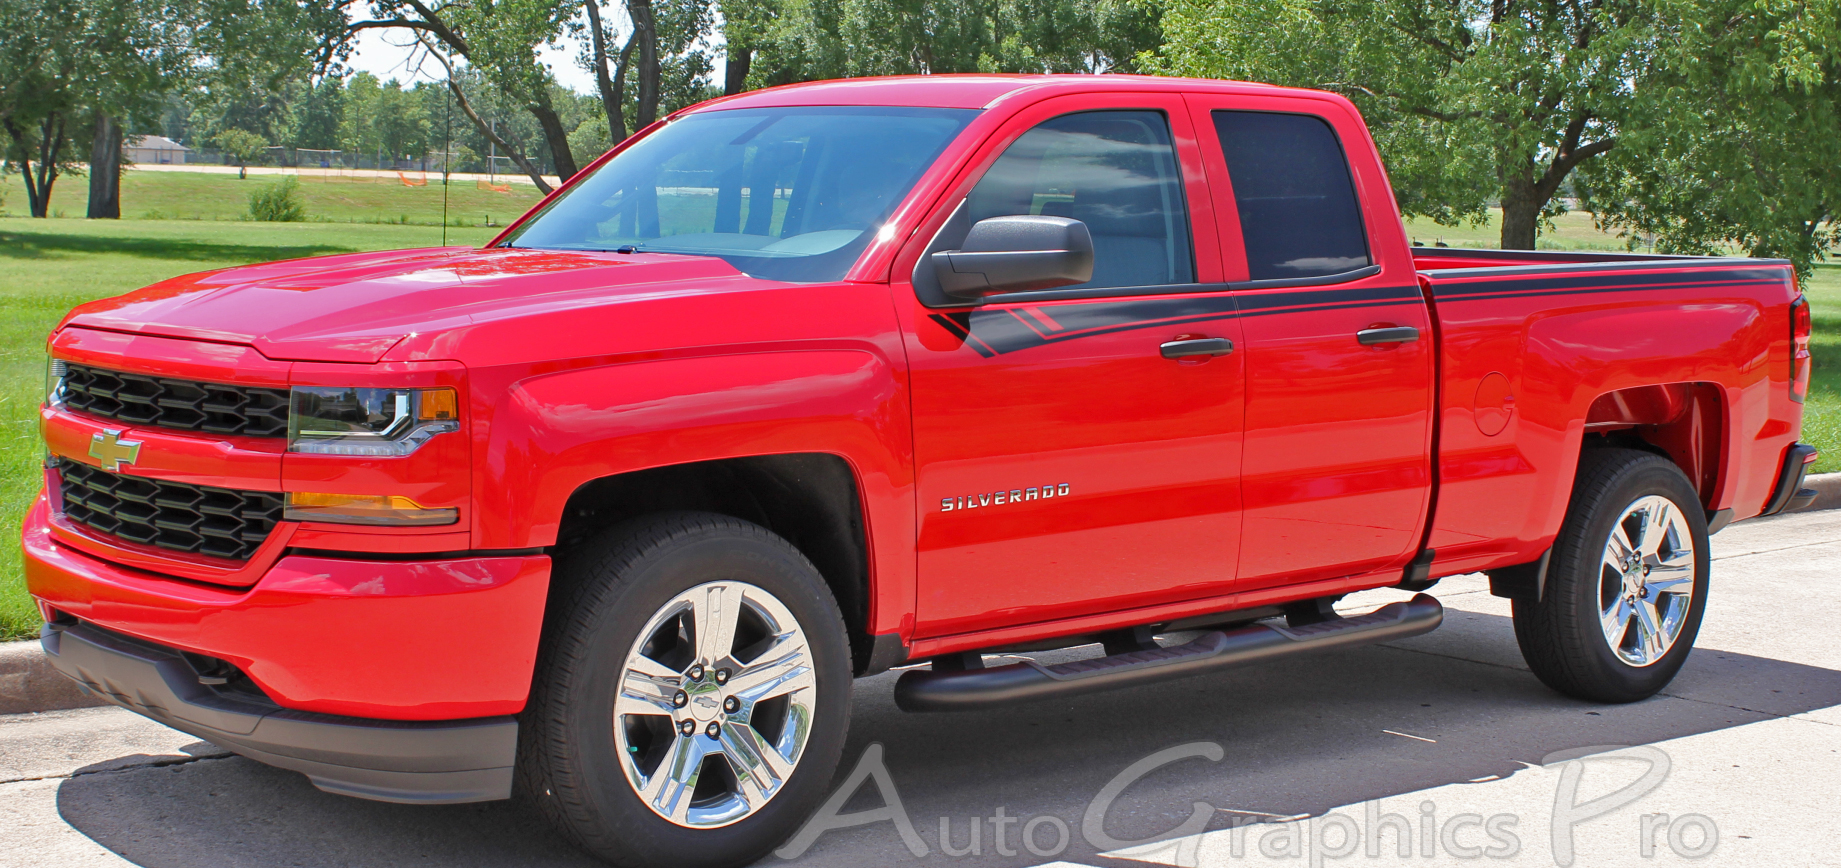 price of the 2014 silverado rally edition autos post. Black Bedroom Furniture Sets. Home Design Ideas